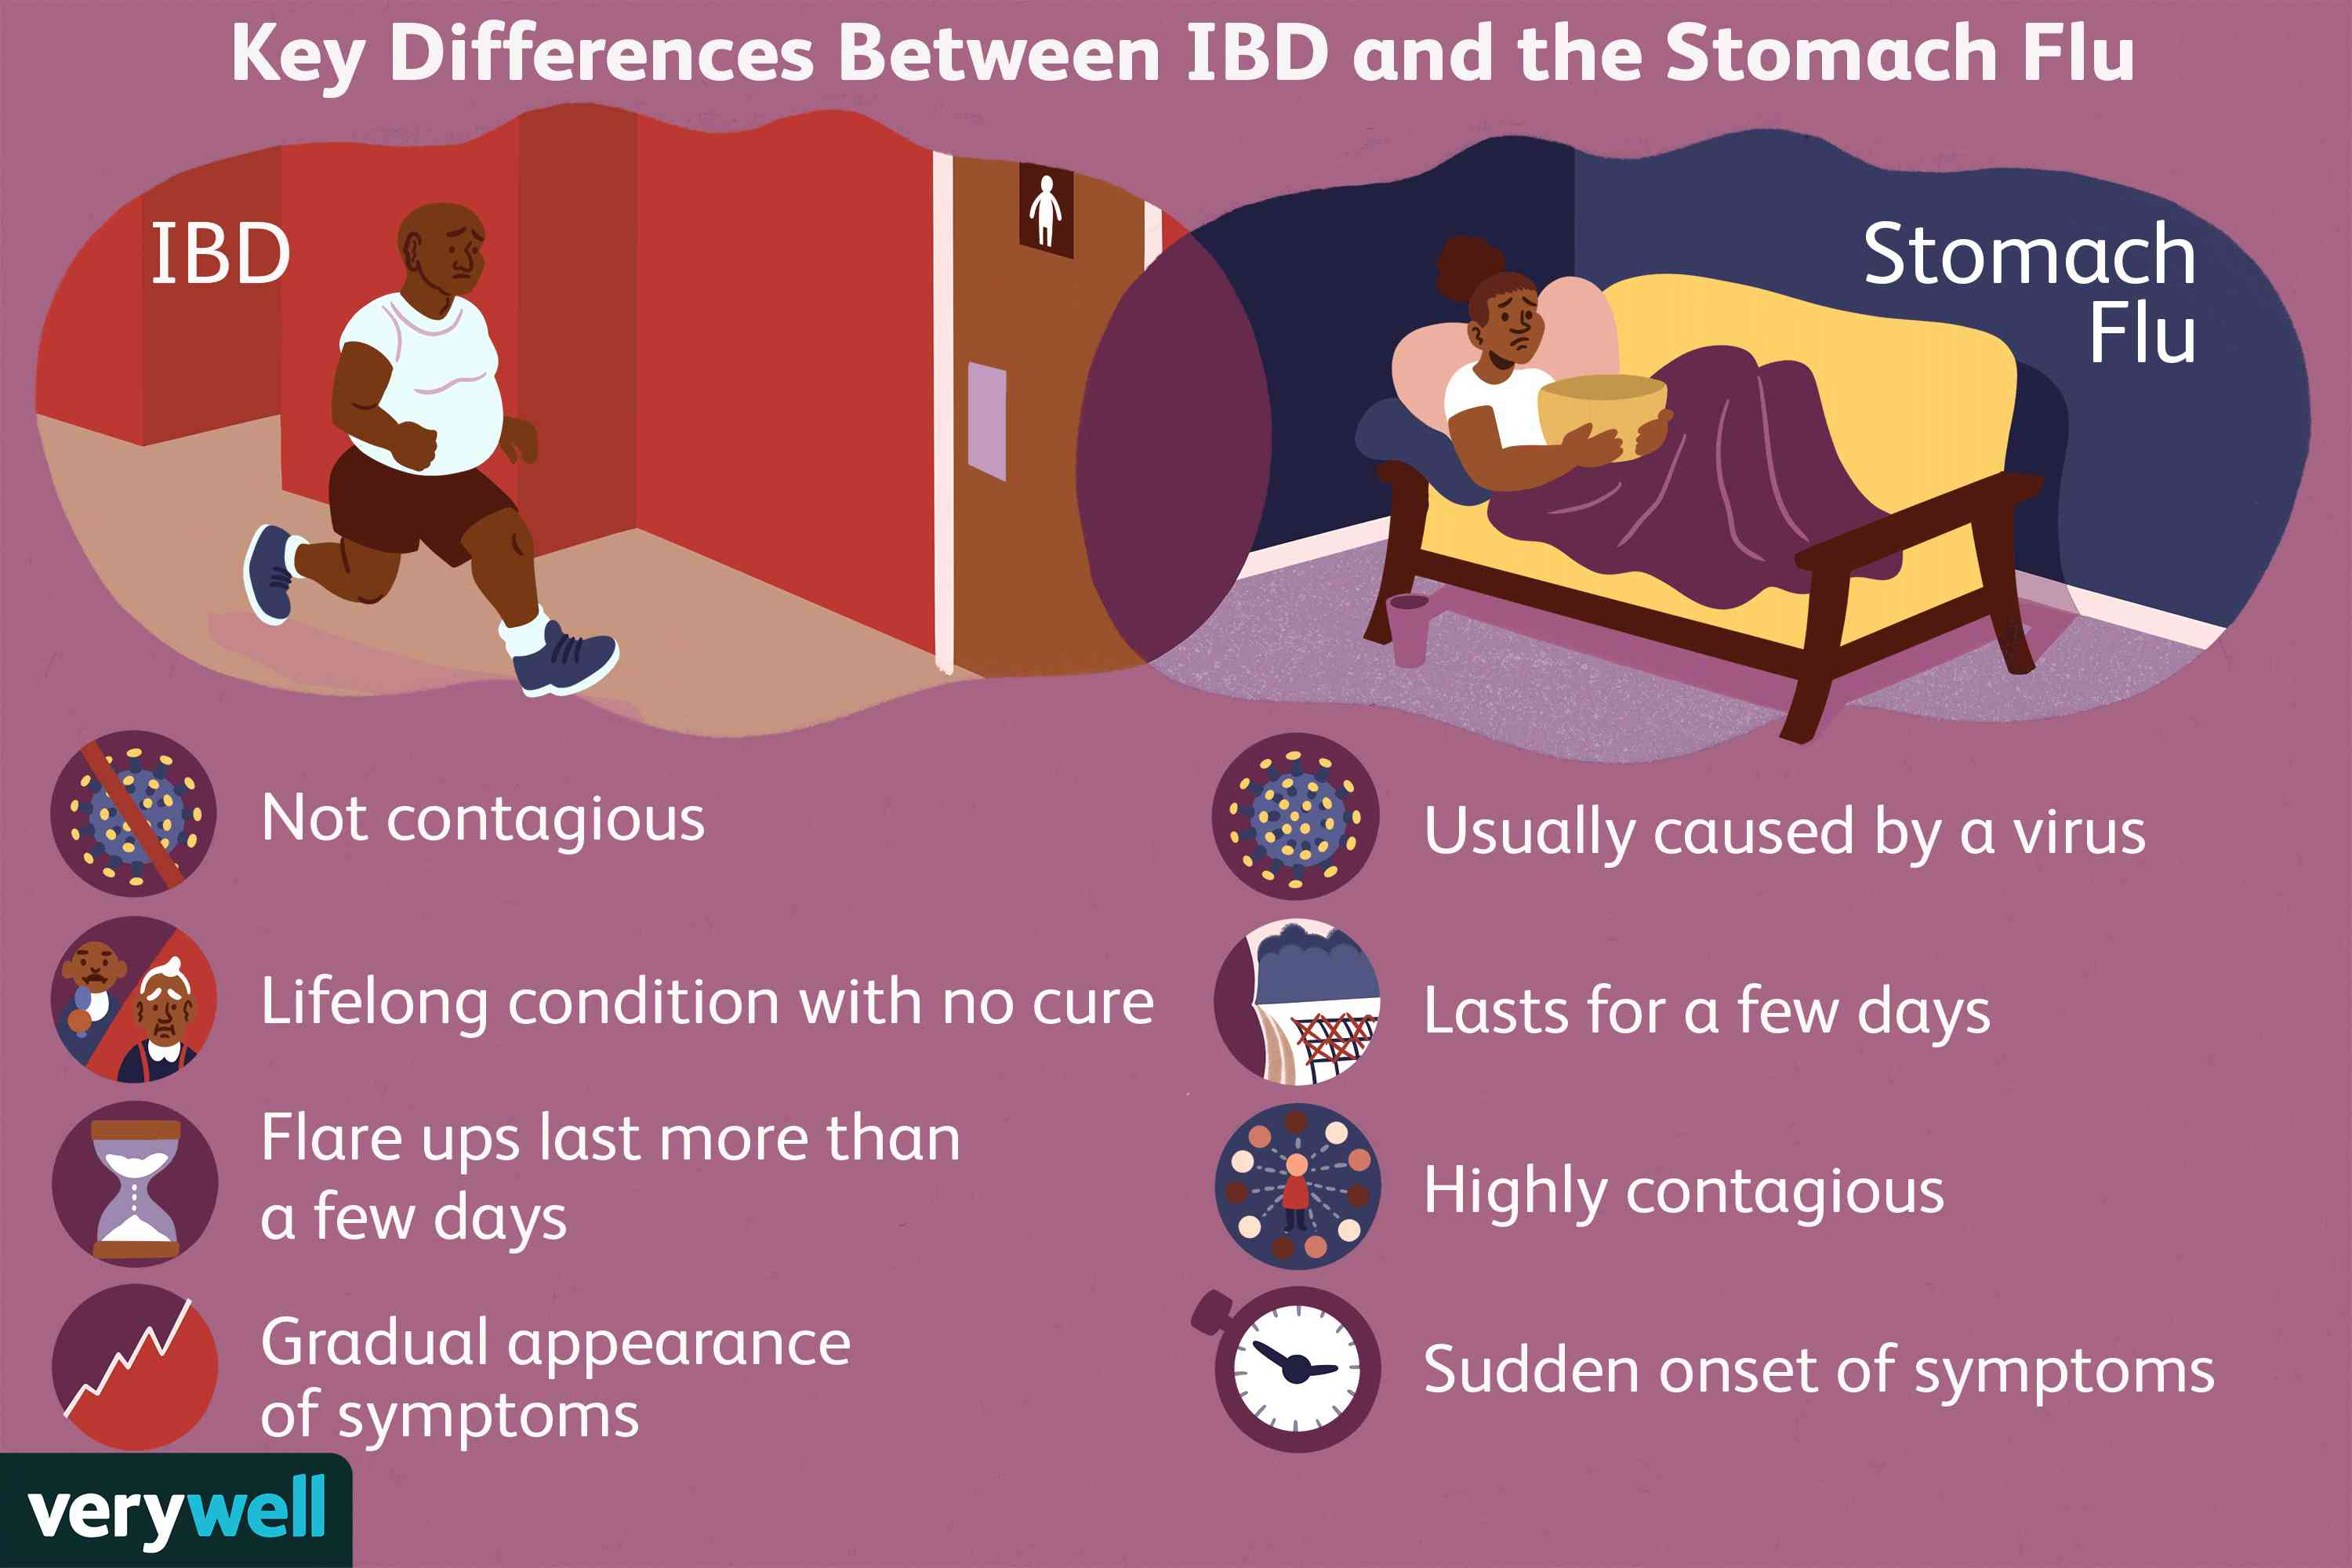 Key Differences Between IBD and the Stomach Flu